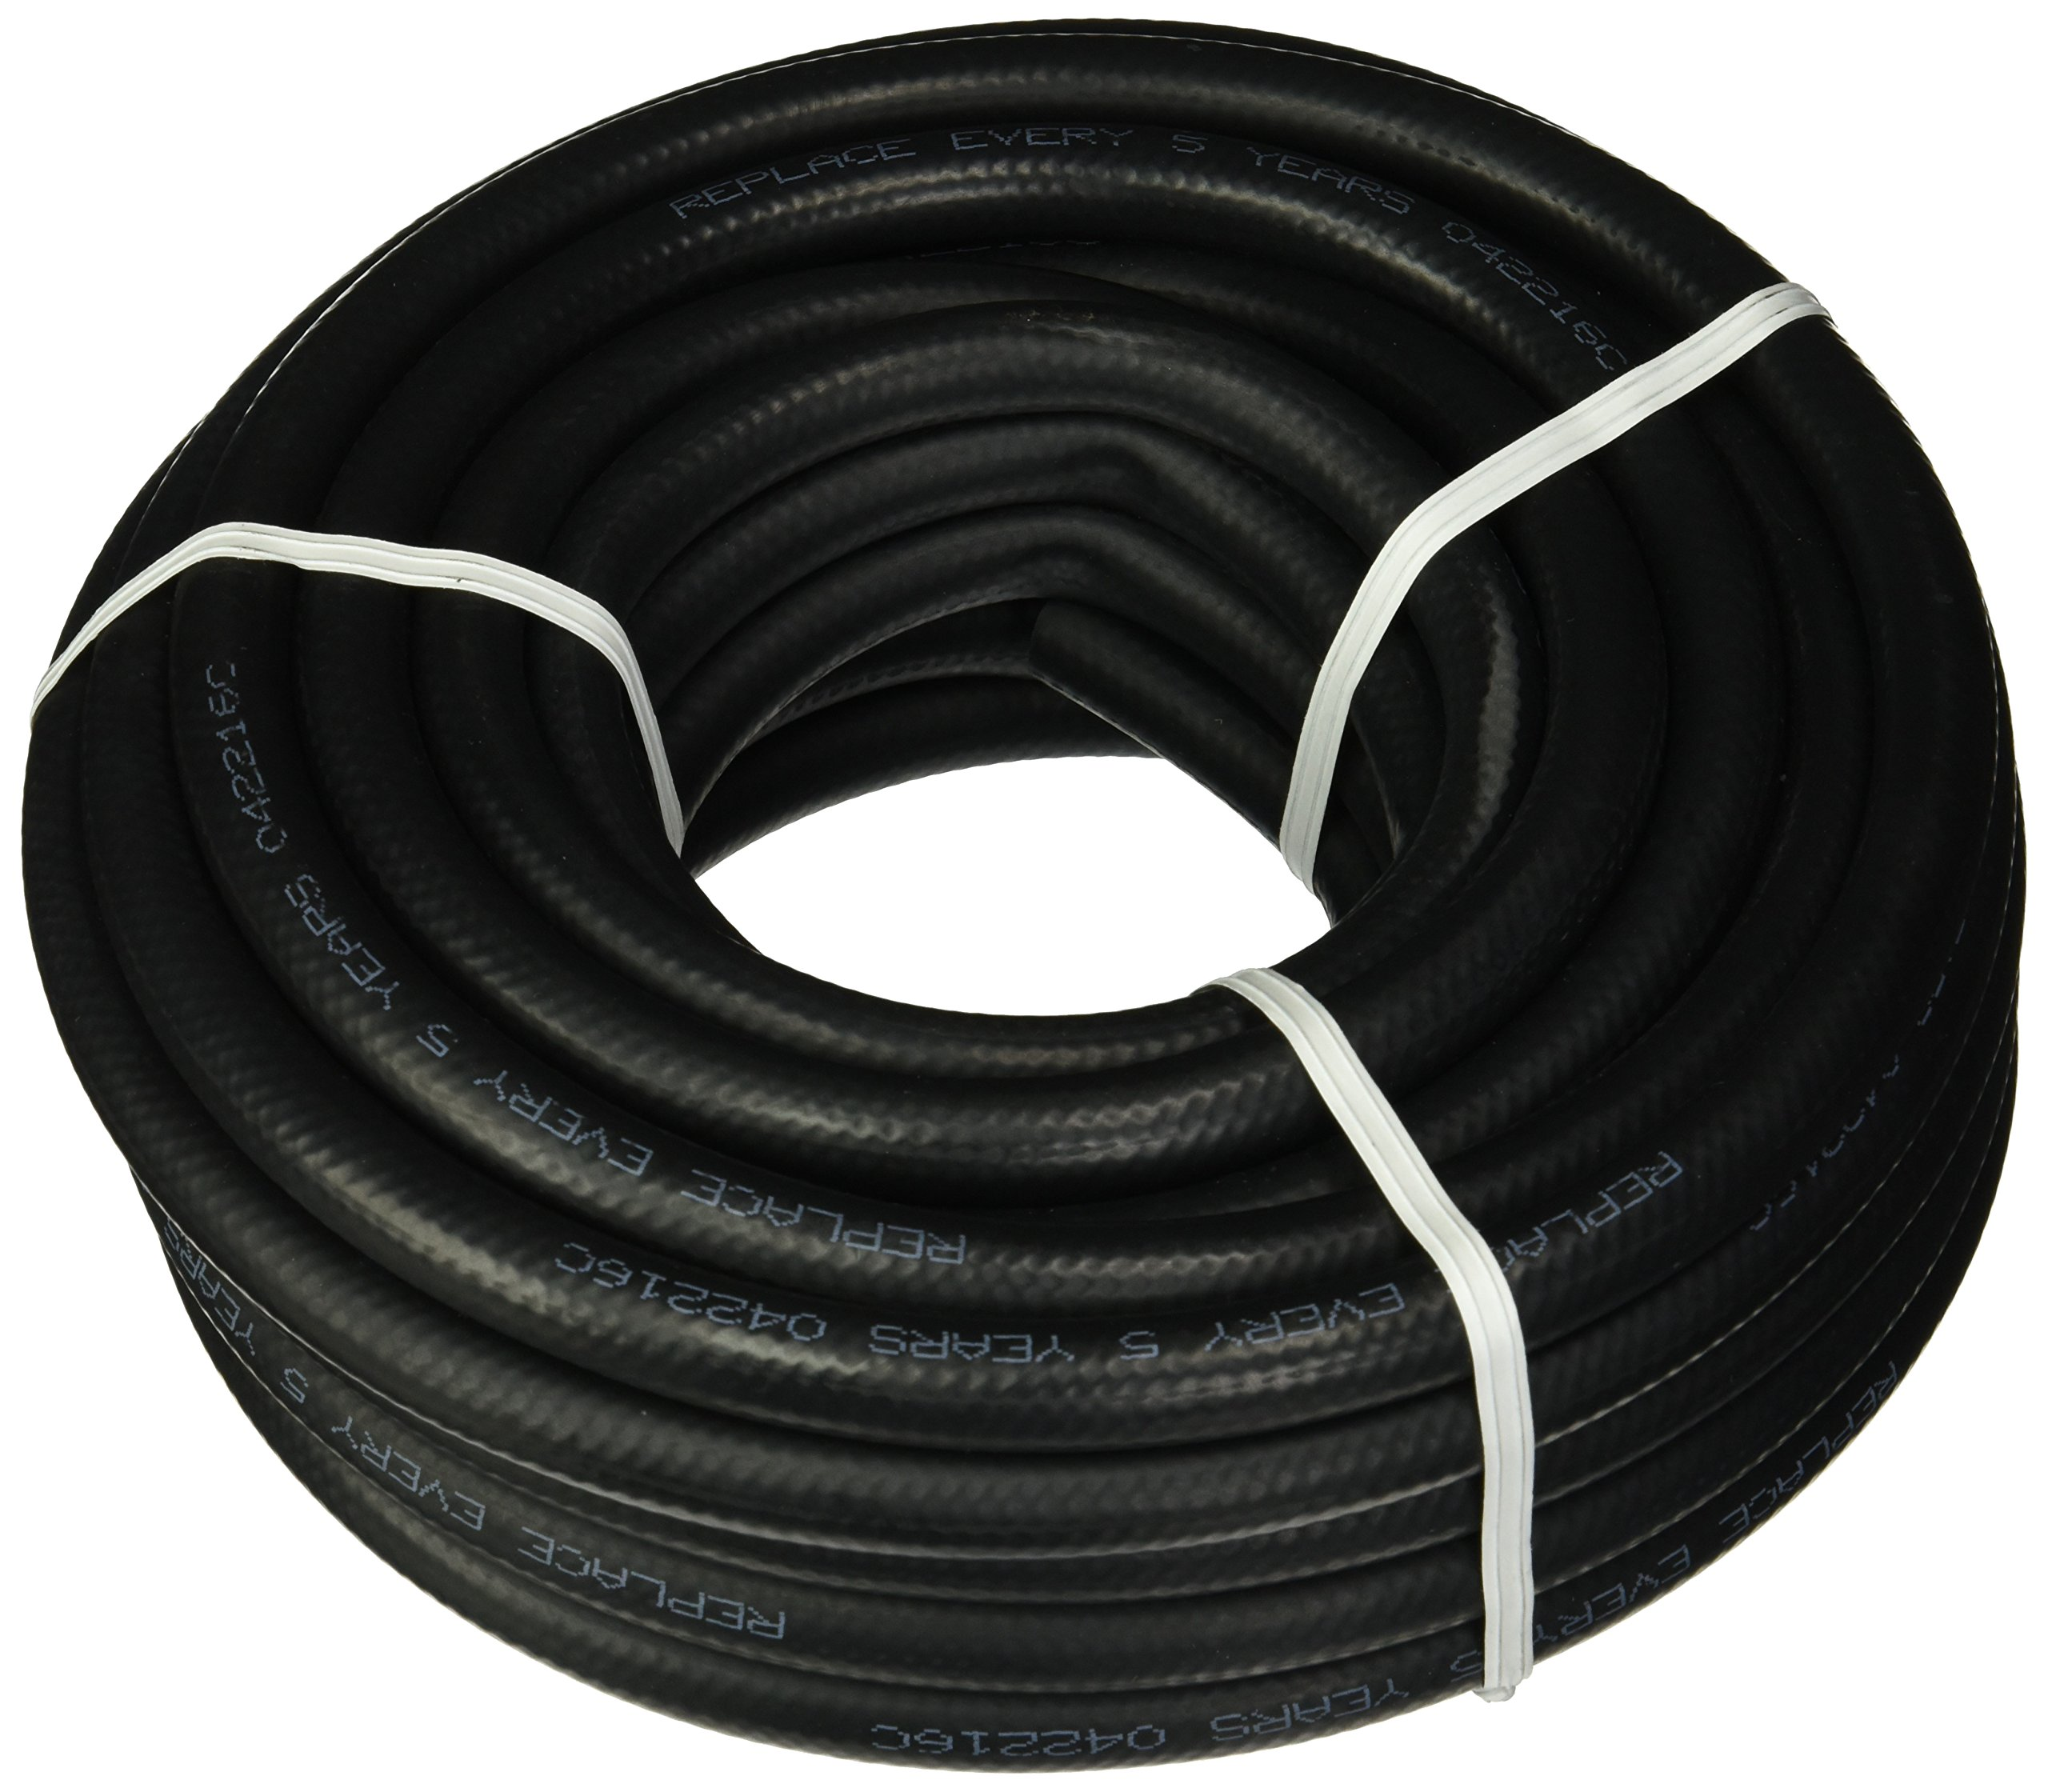 Abbott Rubber X1110-0381-50 EPDM Rubber Agricultural Spray Hose, 3/8-Inch ID by 50-Feet